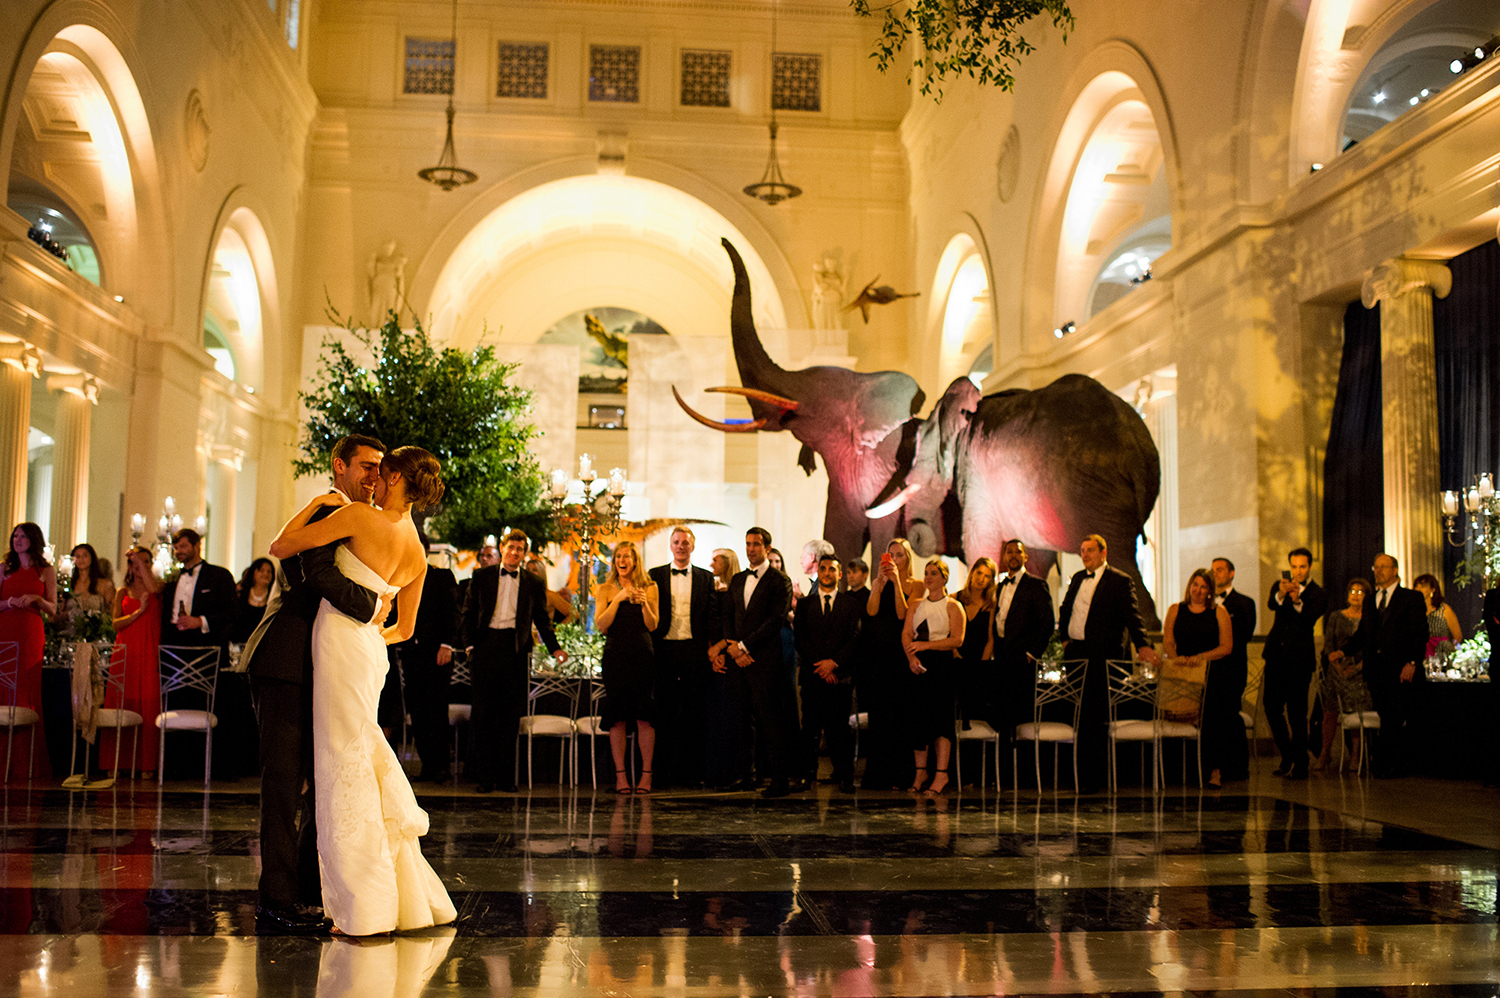 A couple shares their first dance in the center of Stanley Field Hall—with elephants visible in the background—as wedding guests stand and watch from the edge of the dance floor.